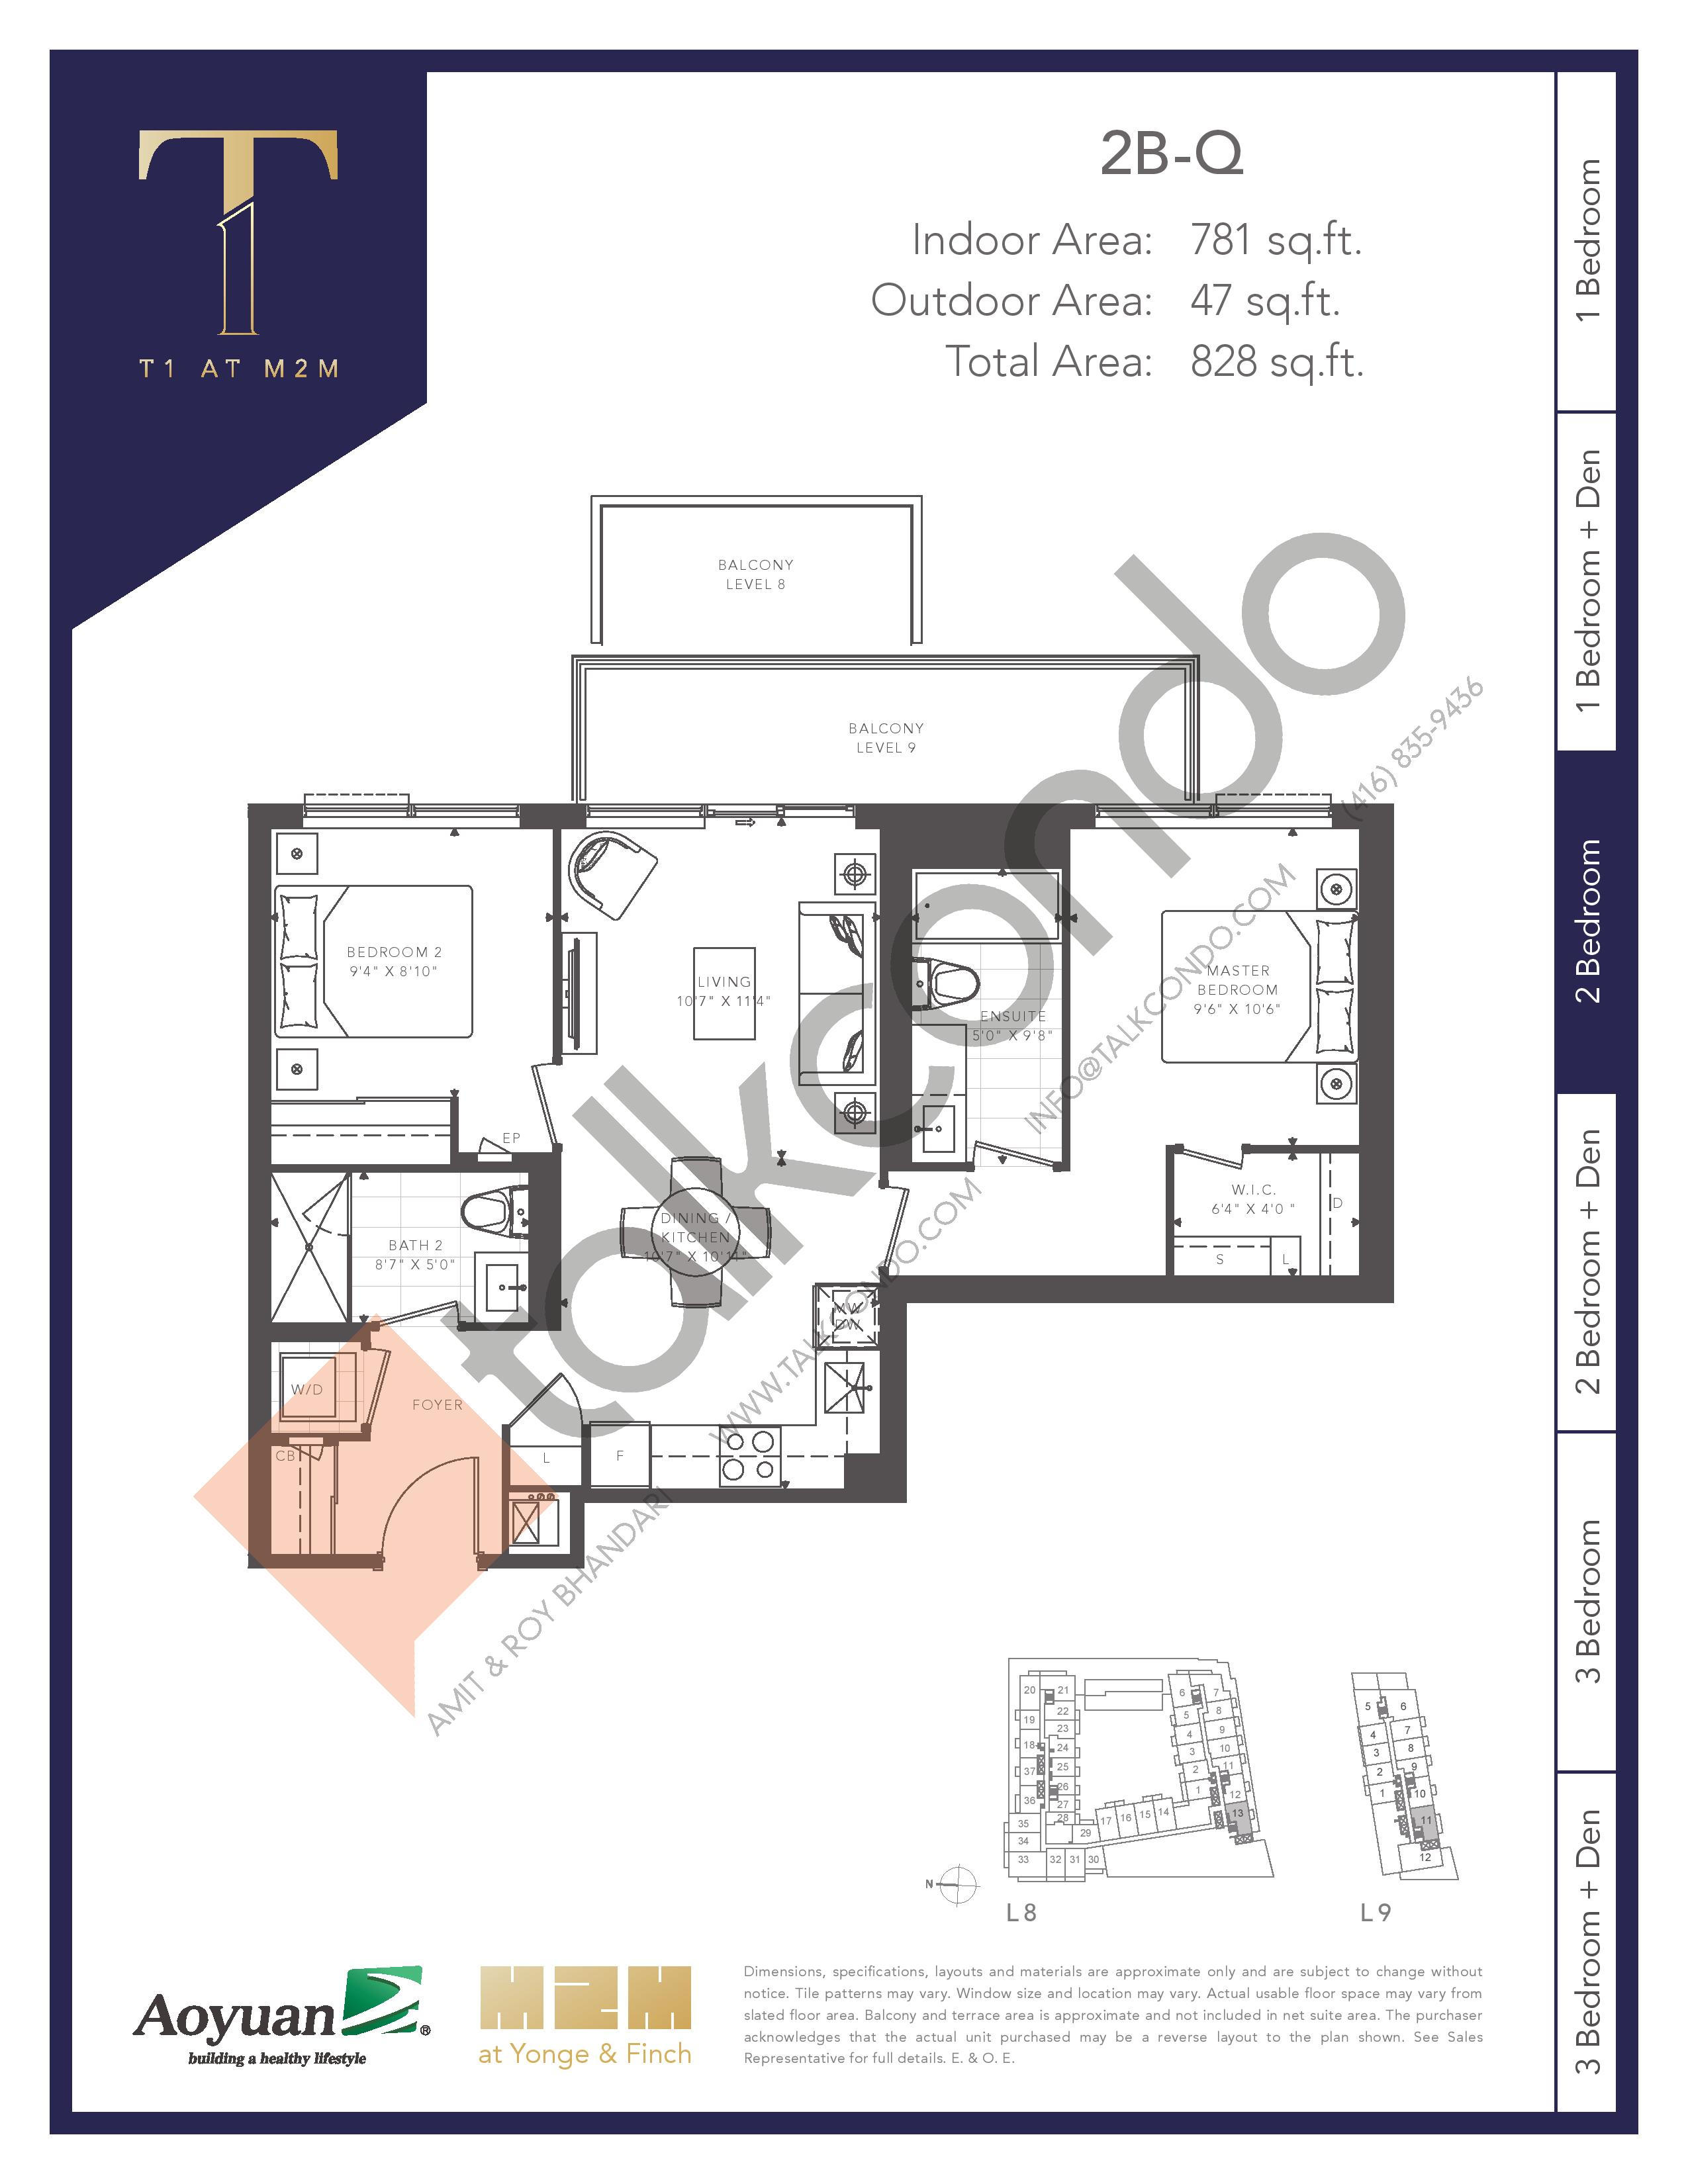 2B-Q (Tower) Floor Plan at T1 at M2M Condos - 781 sq.ft